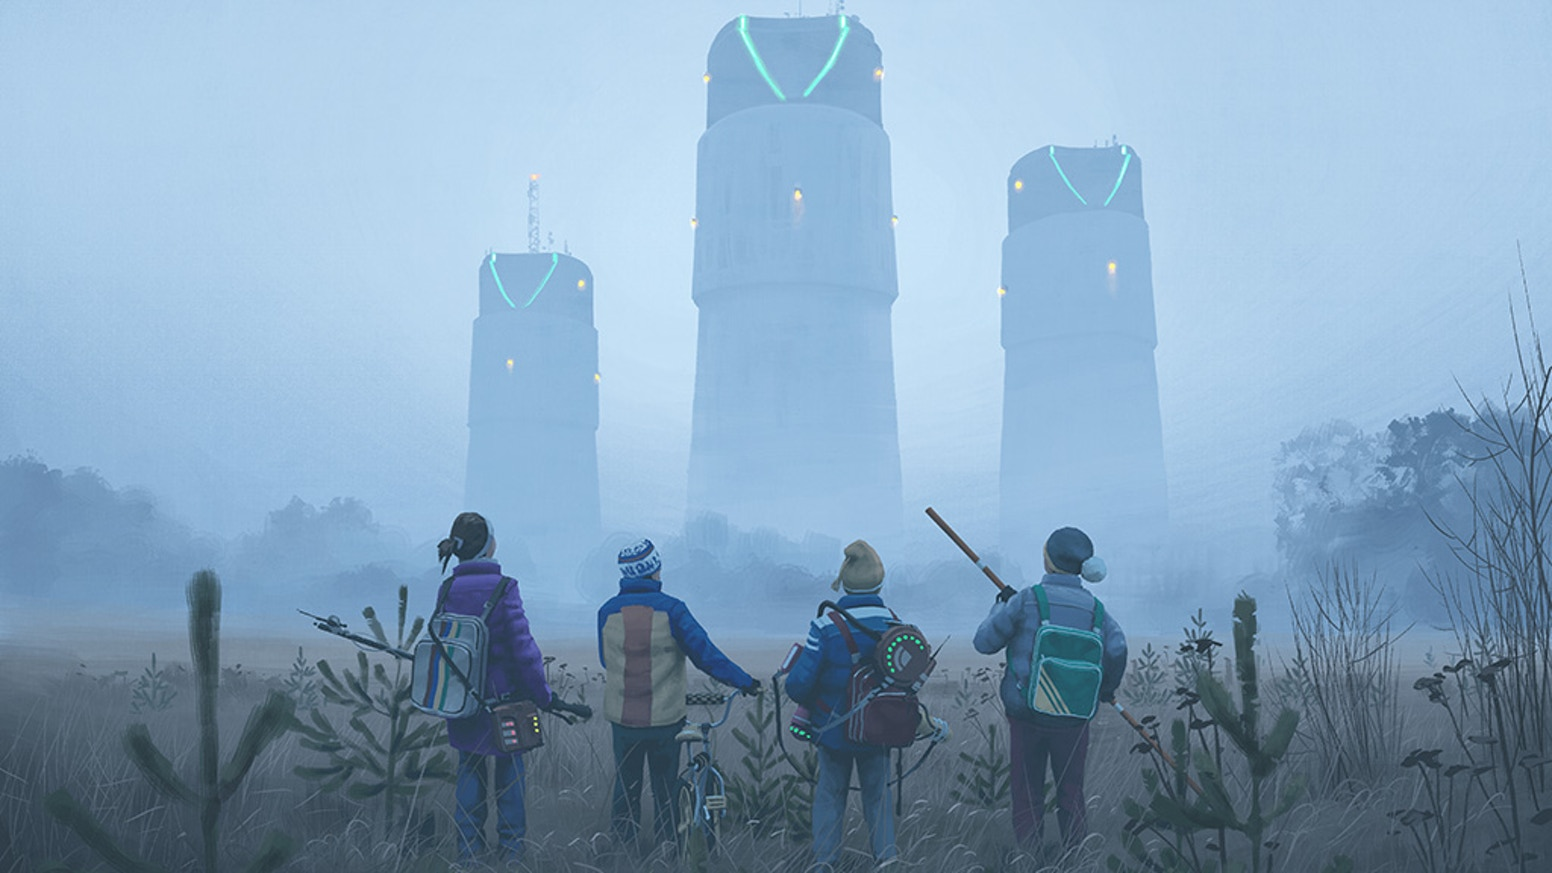 Step into the alternate '80s universe created by scifi artist Simon Stålenhag in this retro RPG, in the vein of ET and Stranger Things.